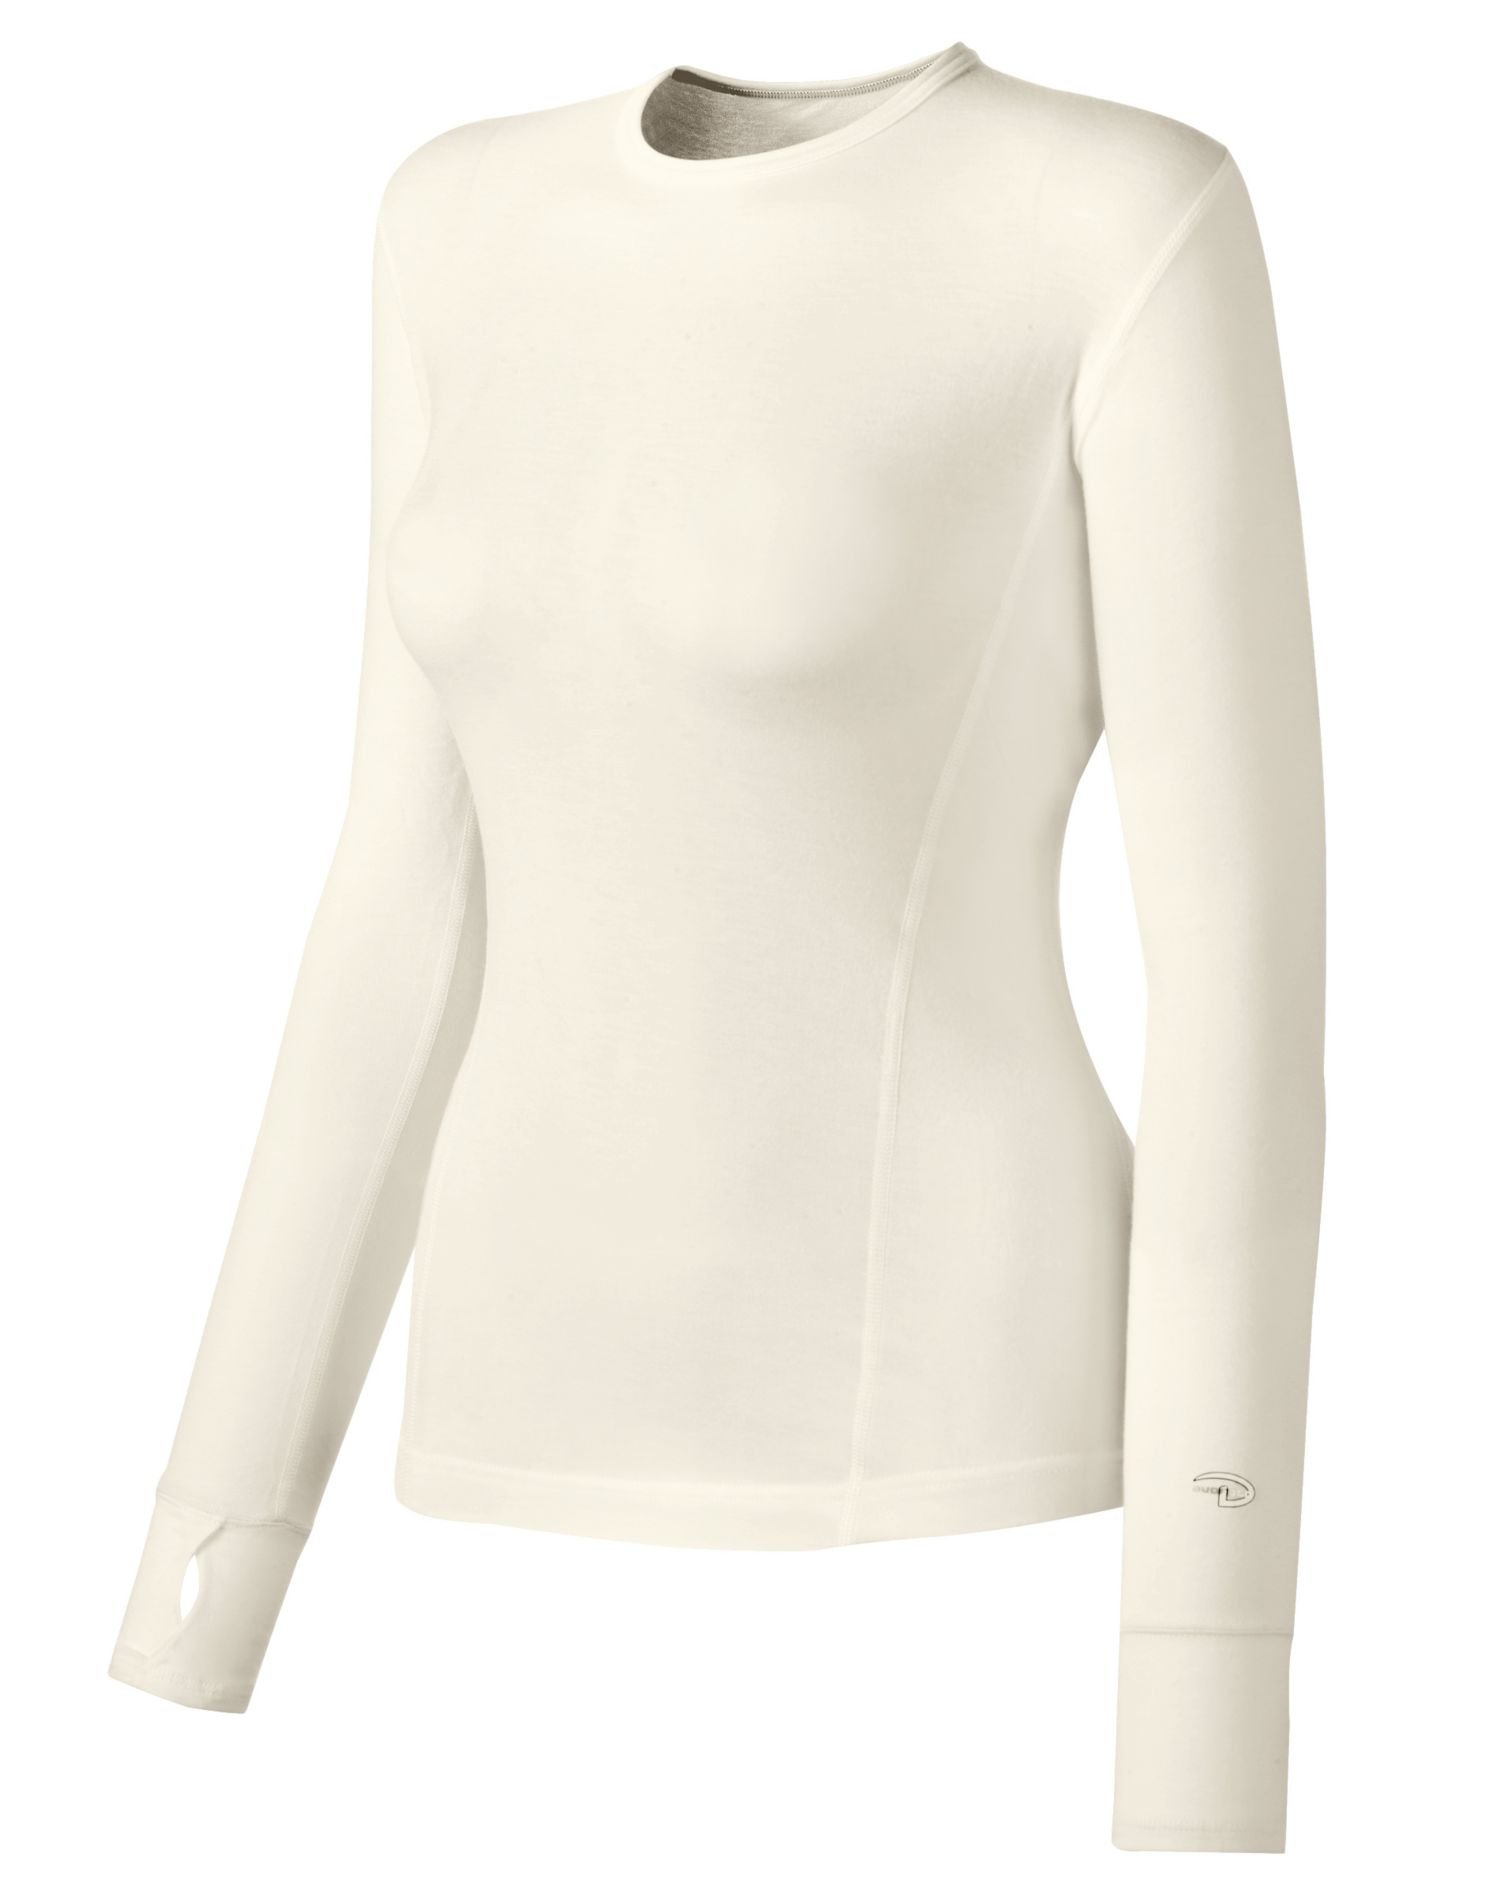 Duofold Women's Mid Weight Varitherm Thermal Shirt, Pearl, Small